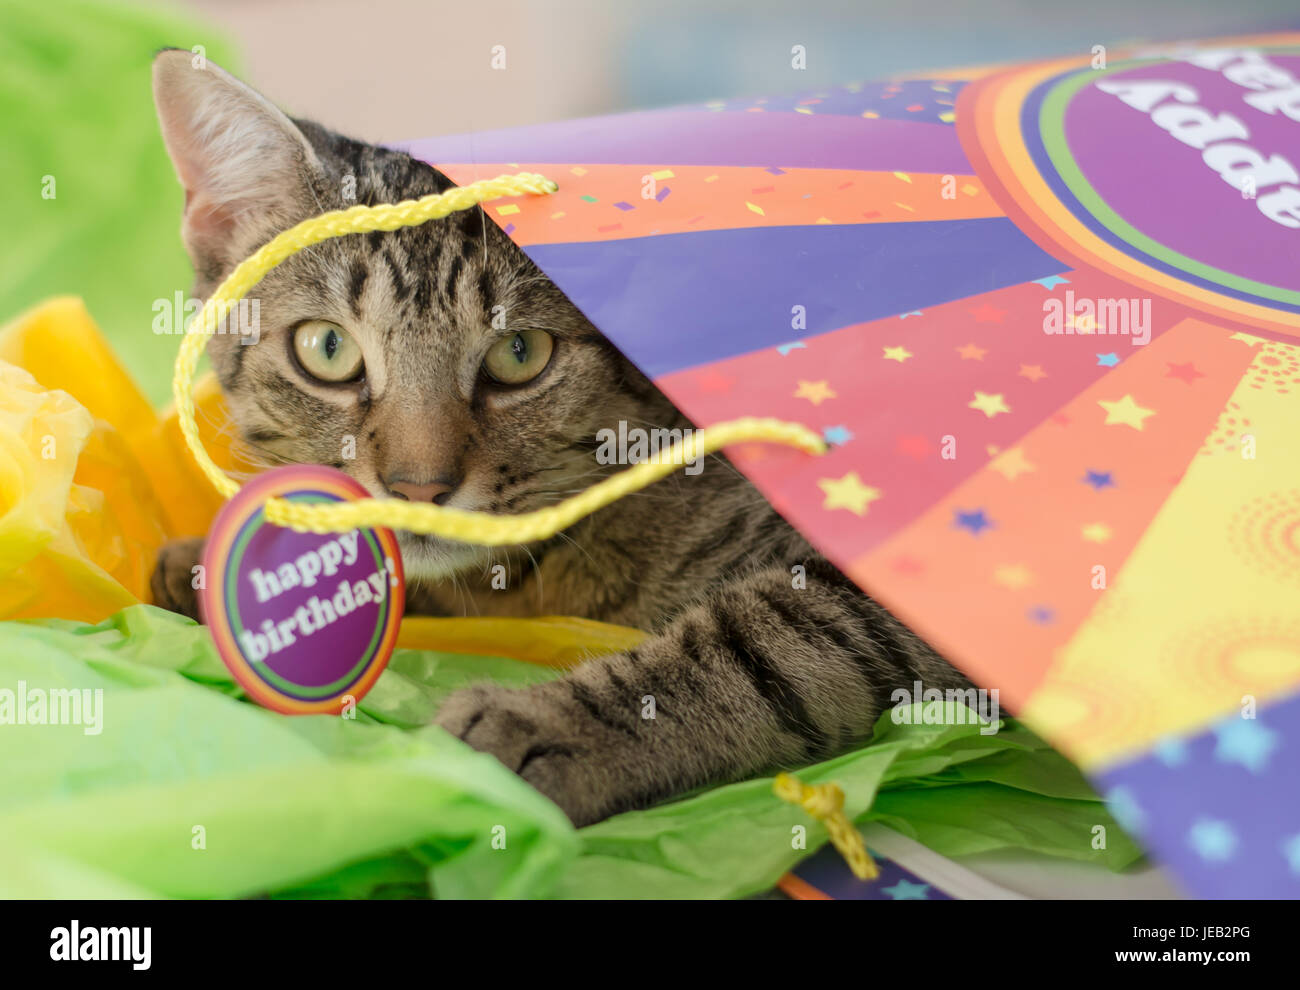 Cat Playing In A Happy Birthday Gift Bag